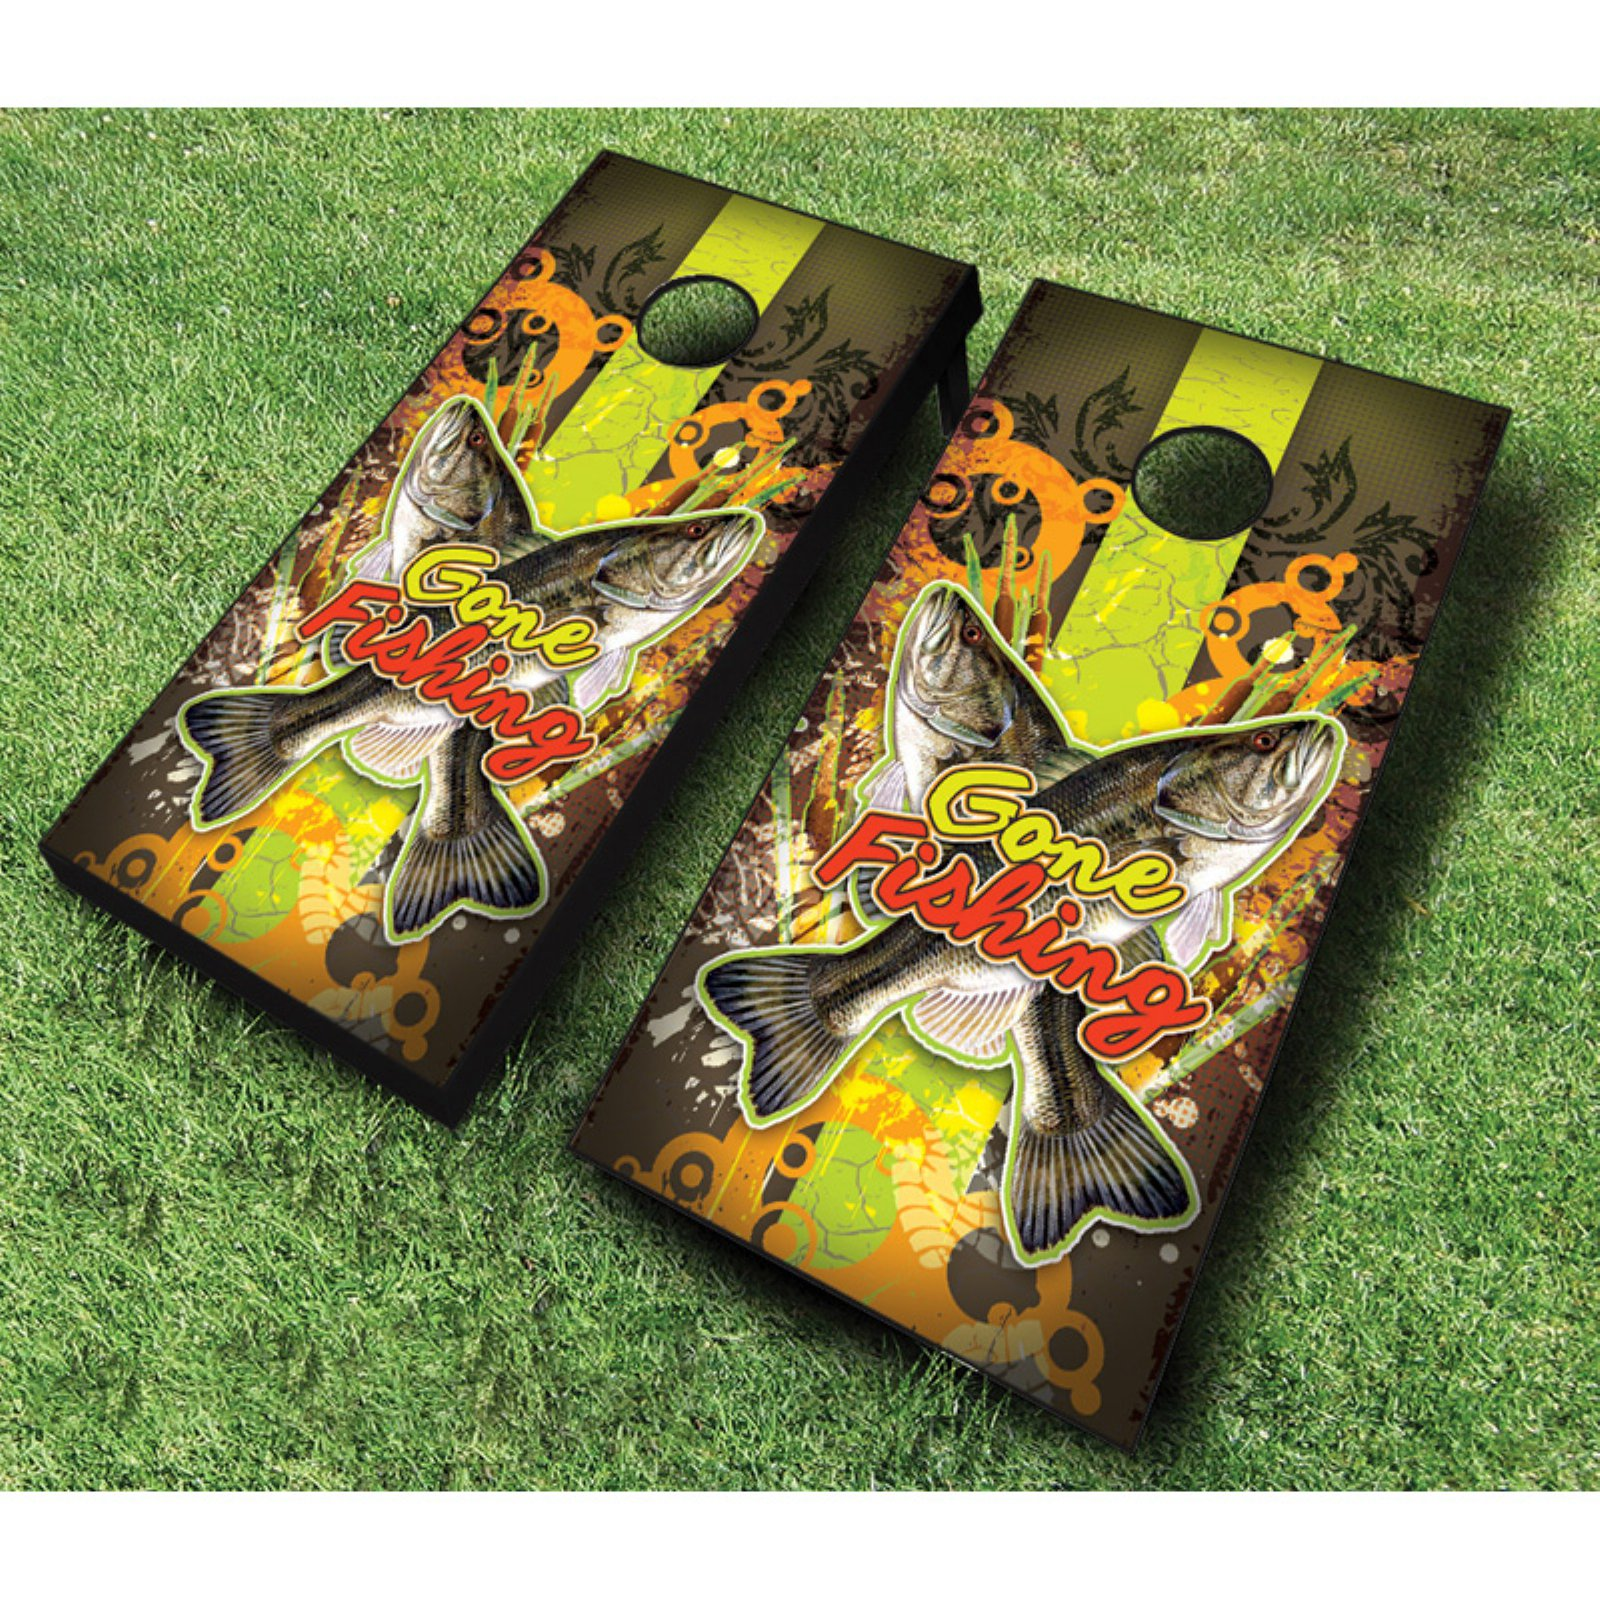 AJJ Cornhole Gone Fishing Cornhole Set with Bags by